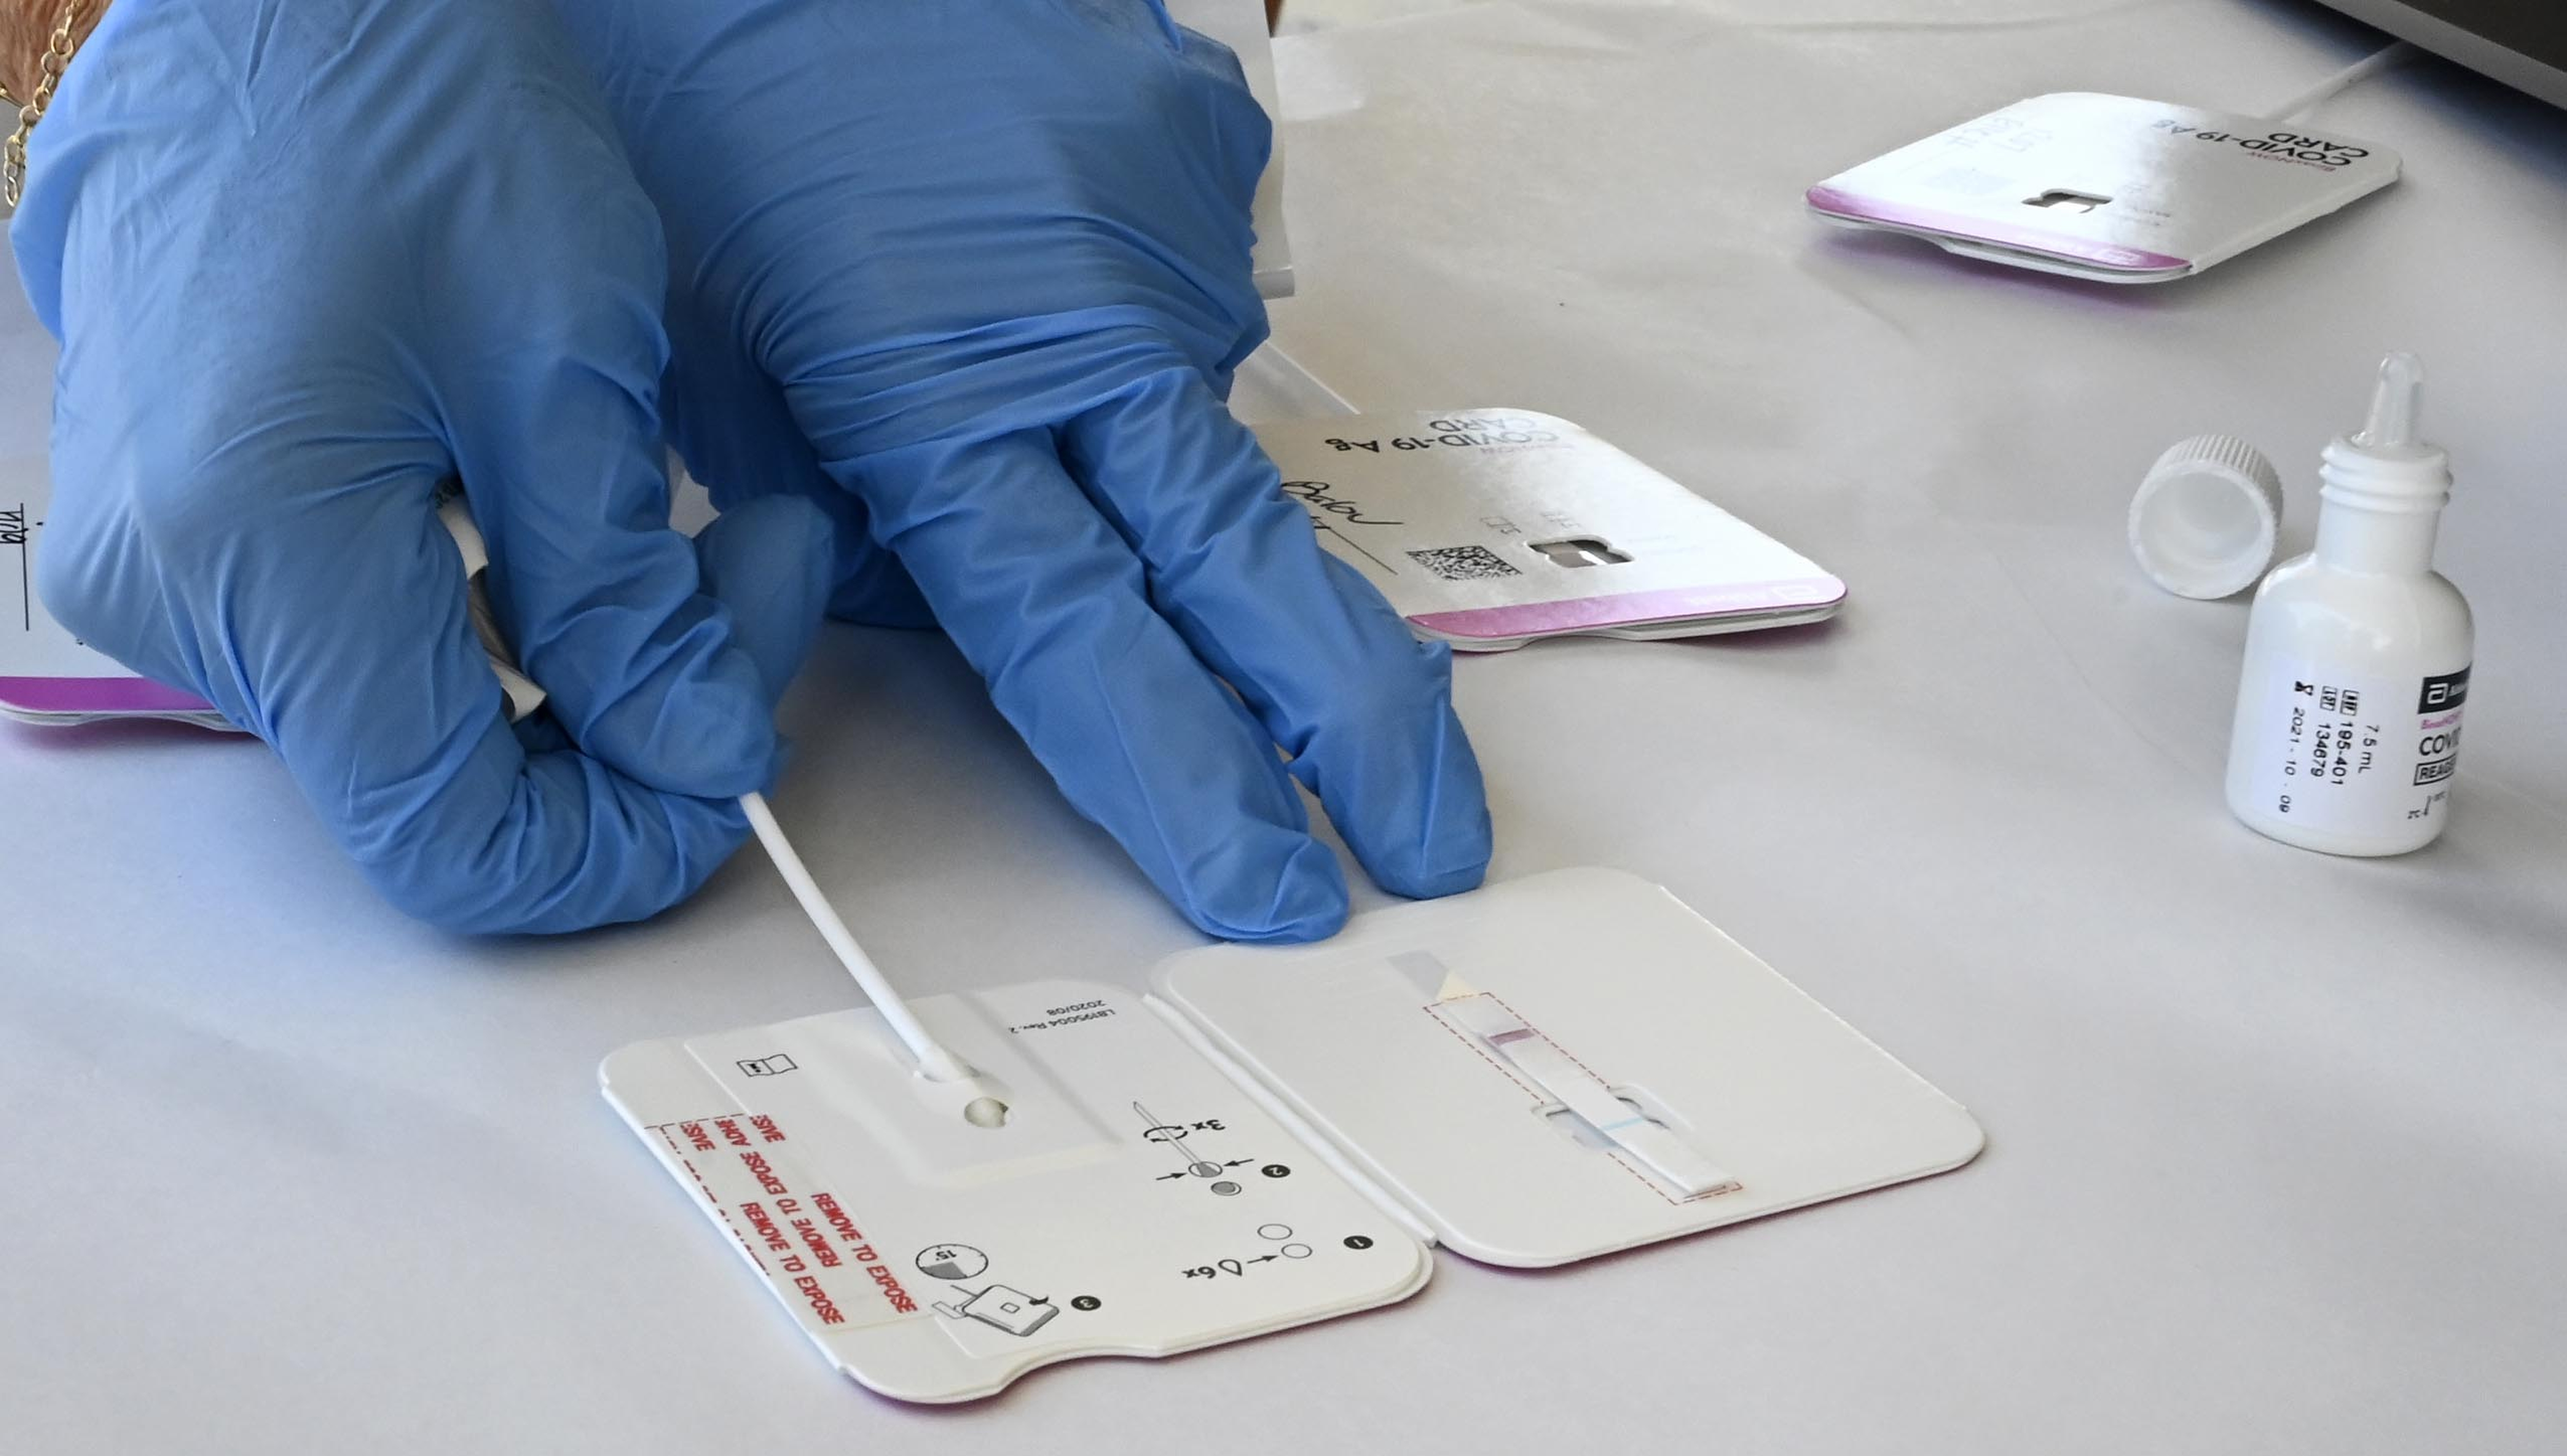 A close up of a health care worker's hands in blue gloves working with COVID testing swabs.